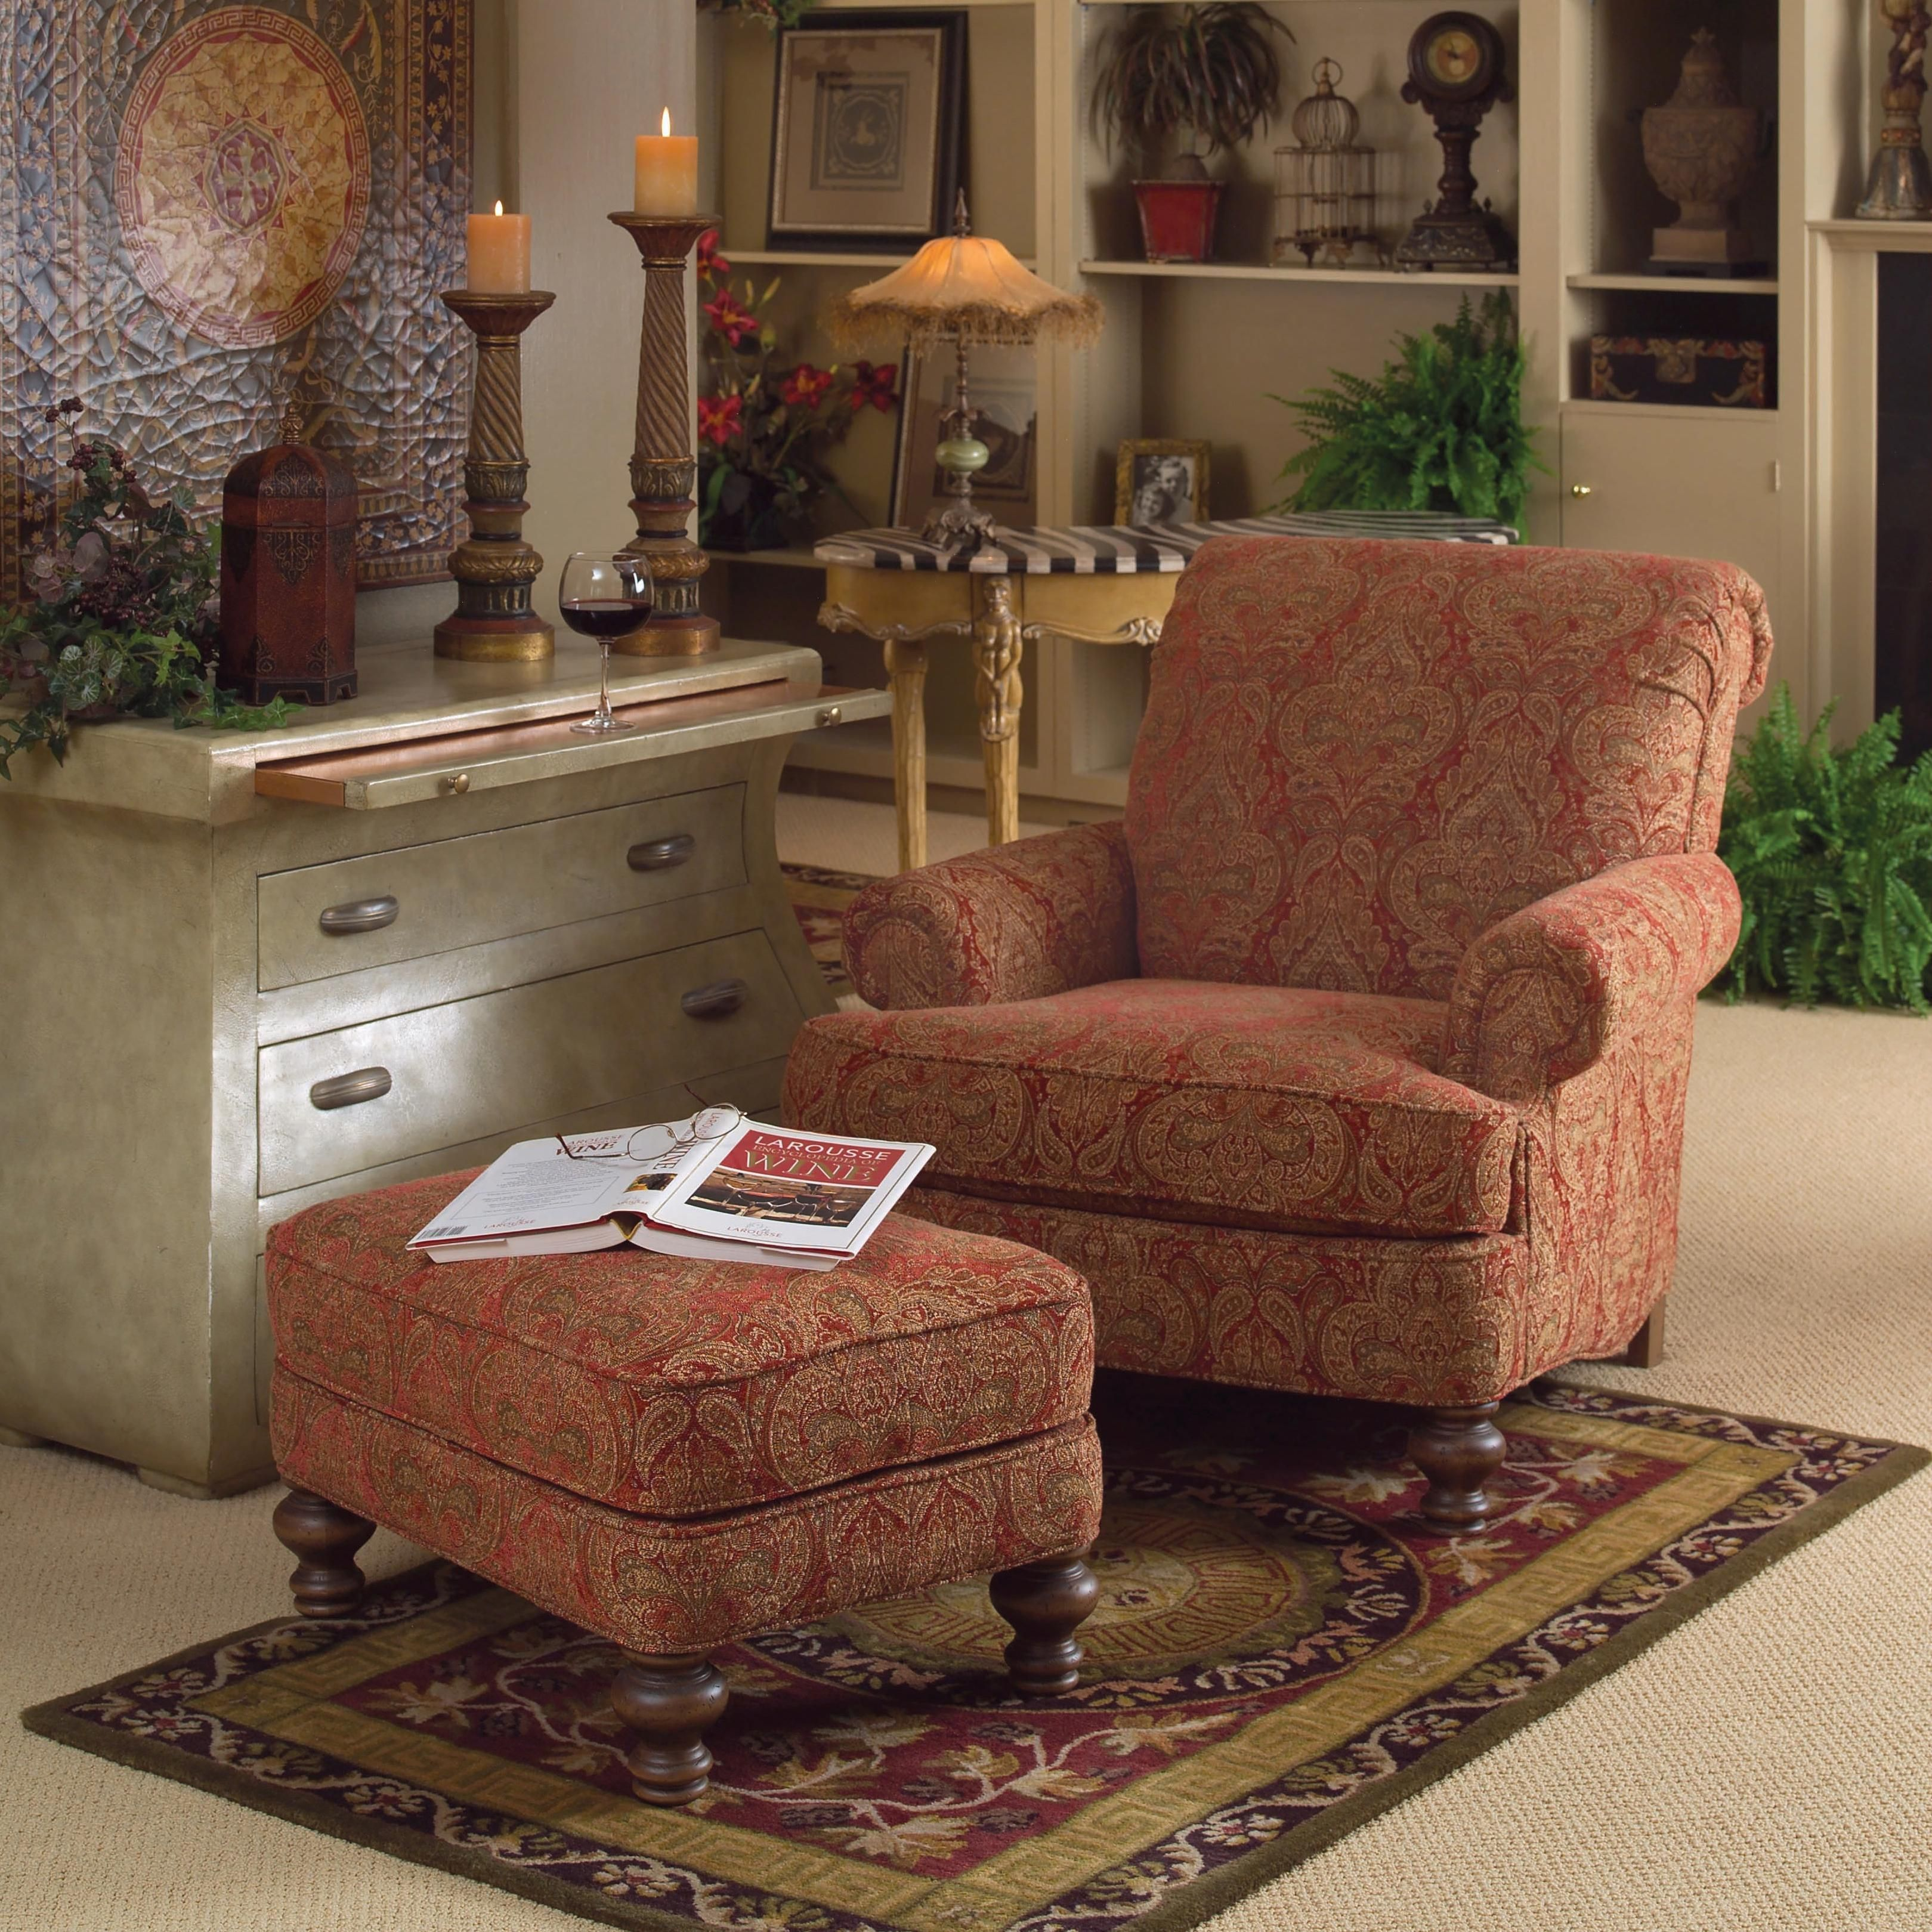 Accent chairs and ottomans sb rectangular ottoman with